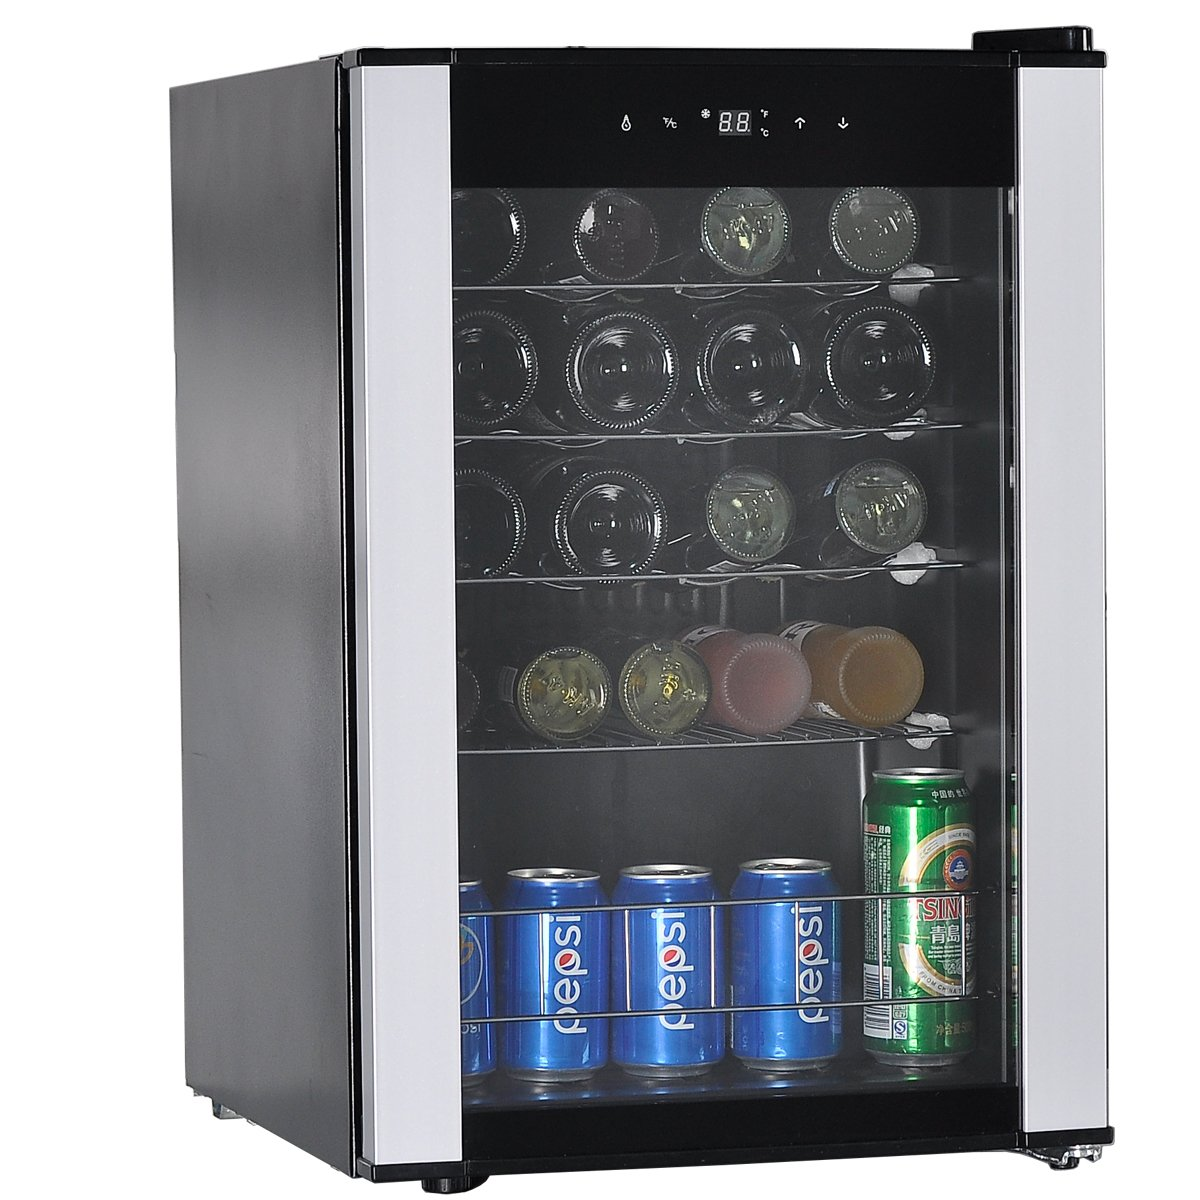 Smad 19 Bottles Wine Refrigerator Compressor Single Zone Free Standing Wine Cooler with Touch Control by Smad (Image #3)